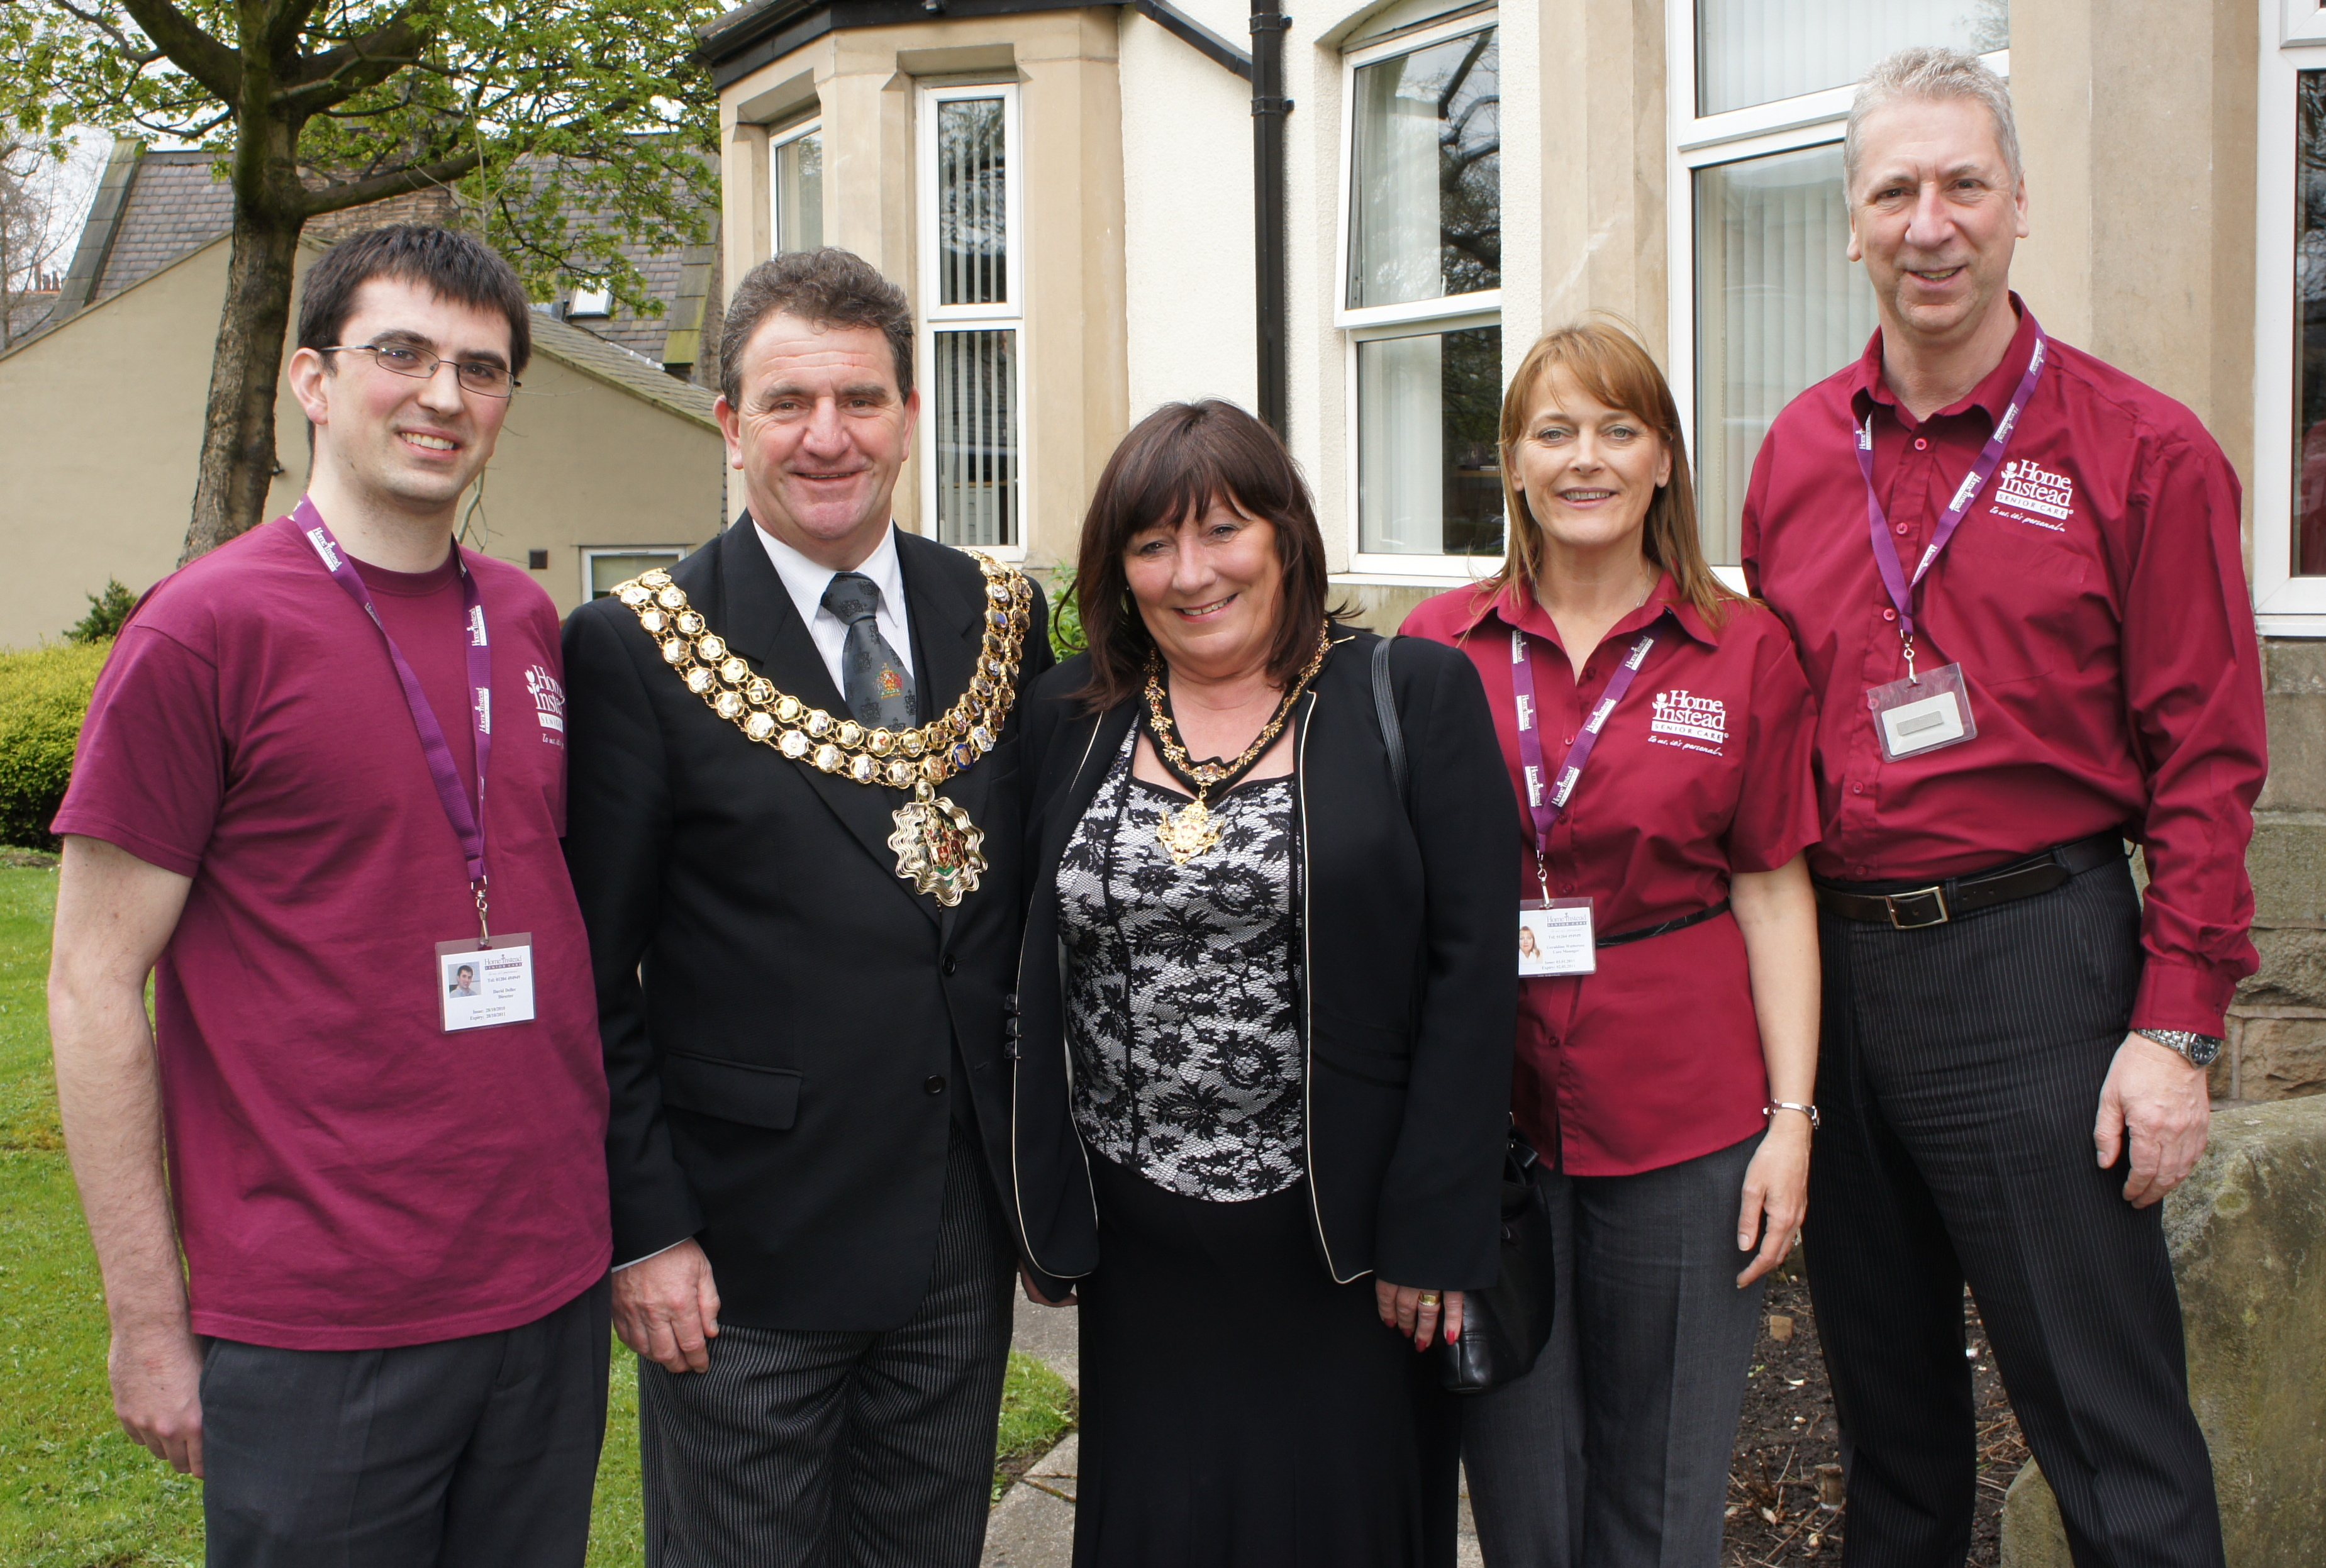 Home Instead Bolton team David Deller, Geraldine Watterson and Steve Williams with the Mayor and Mayoress of Bolton